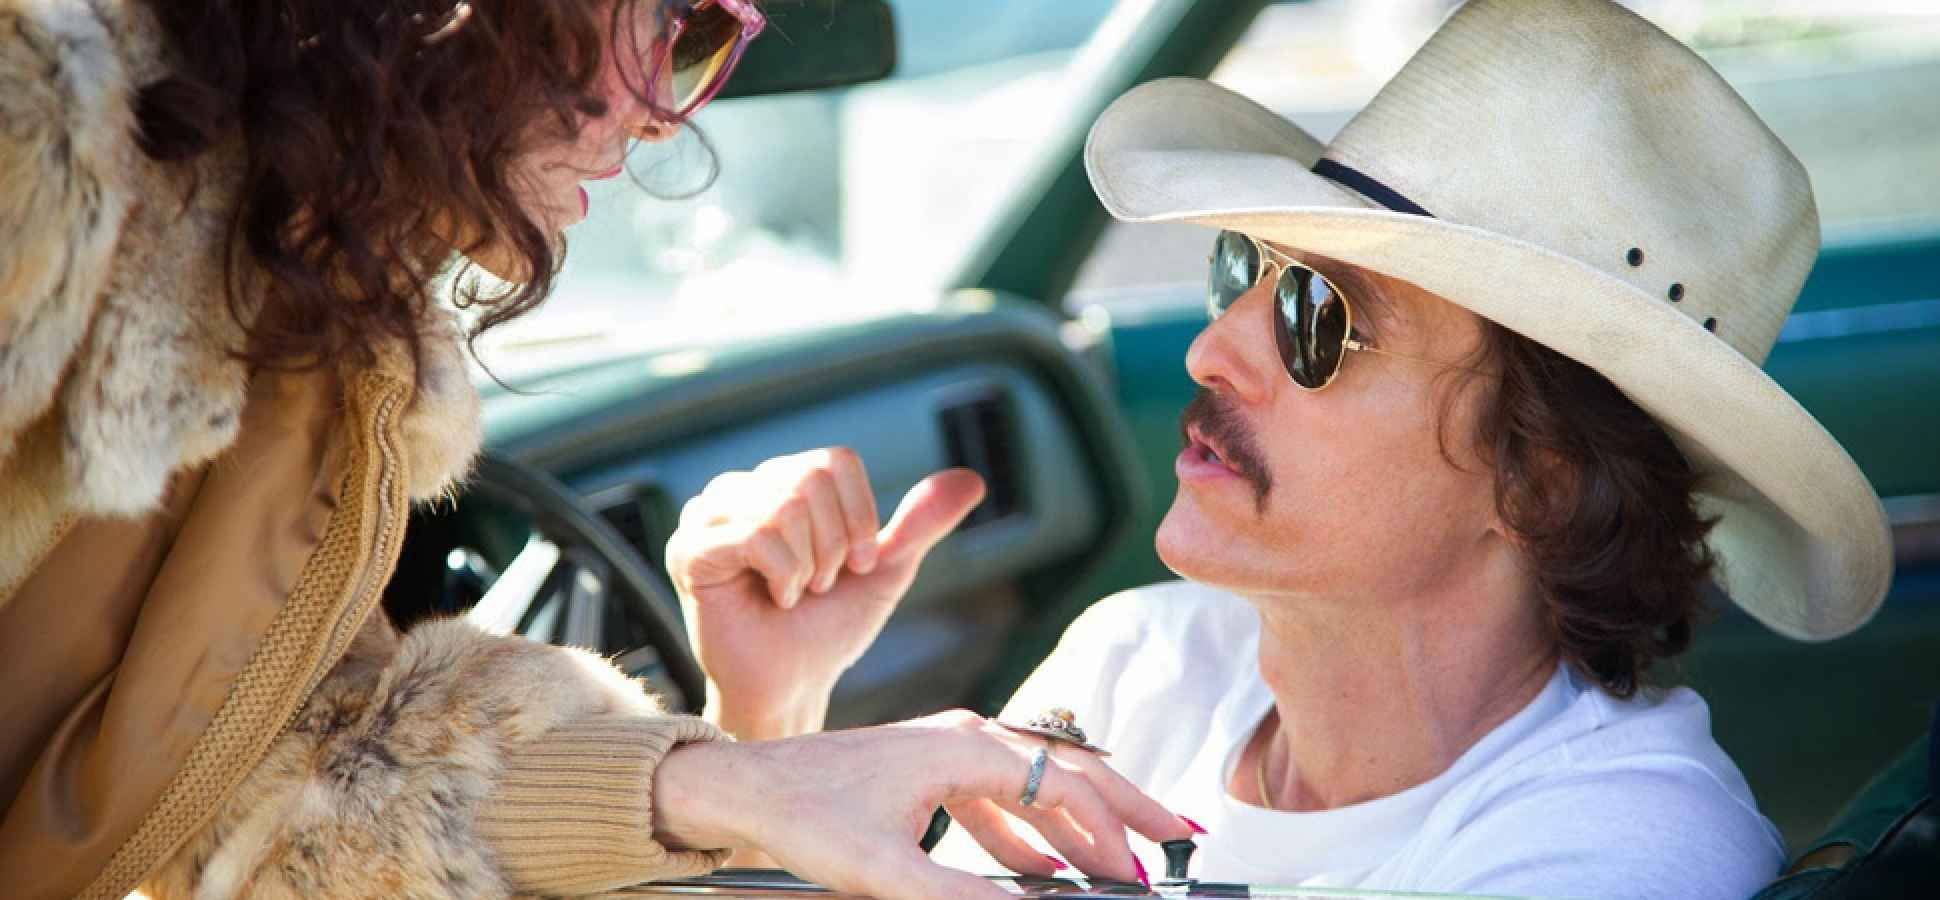 3 Leadership Lessons From Dallas Buyer's Club